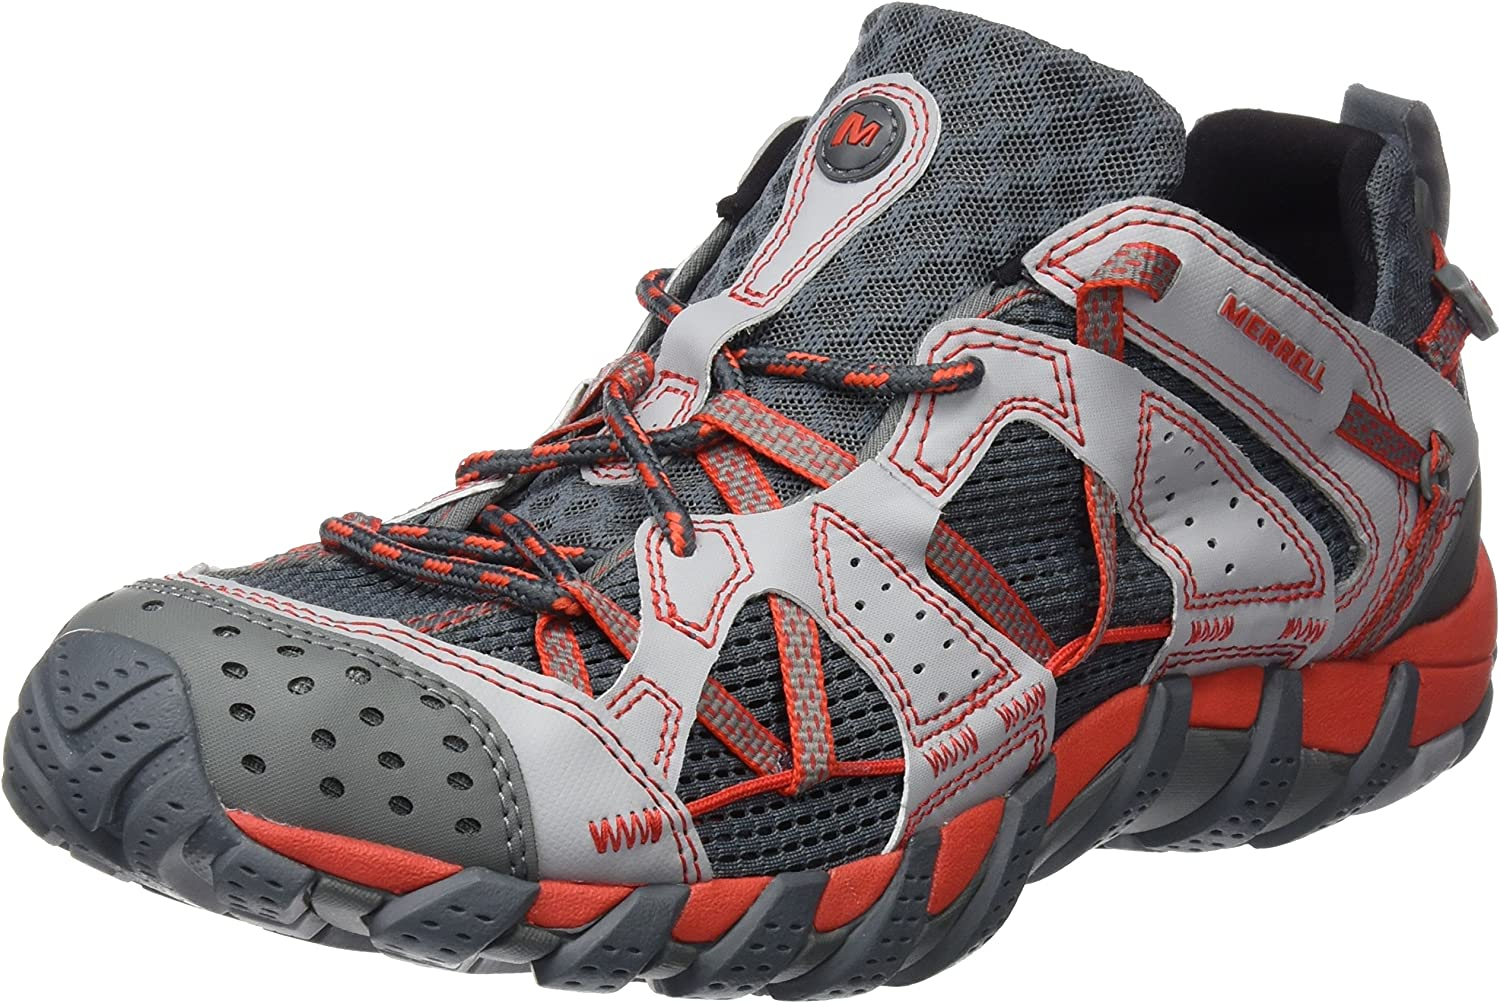 Merrell Men's Watepro Maipo Low Rise Hiking shoes